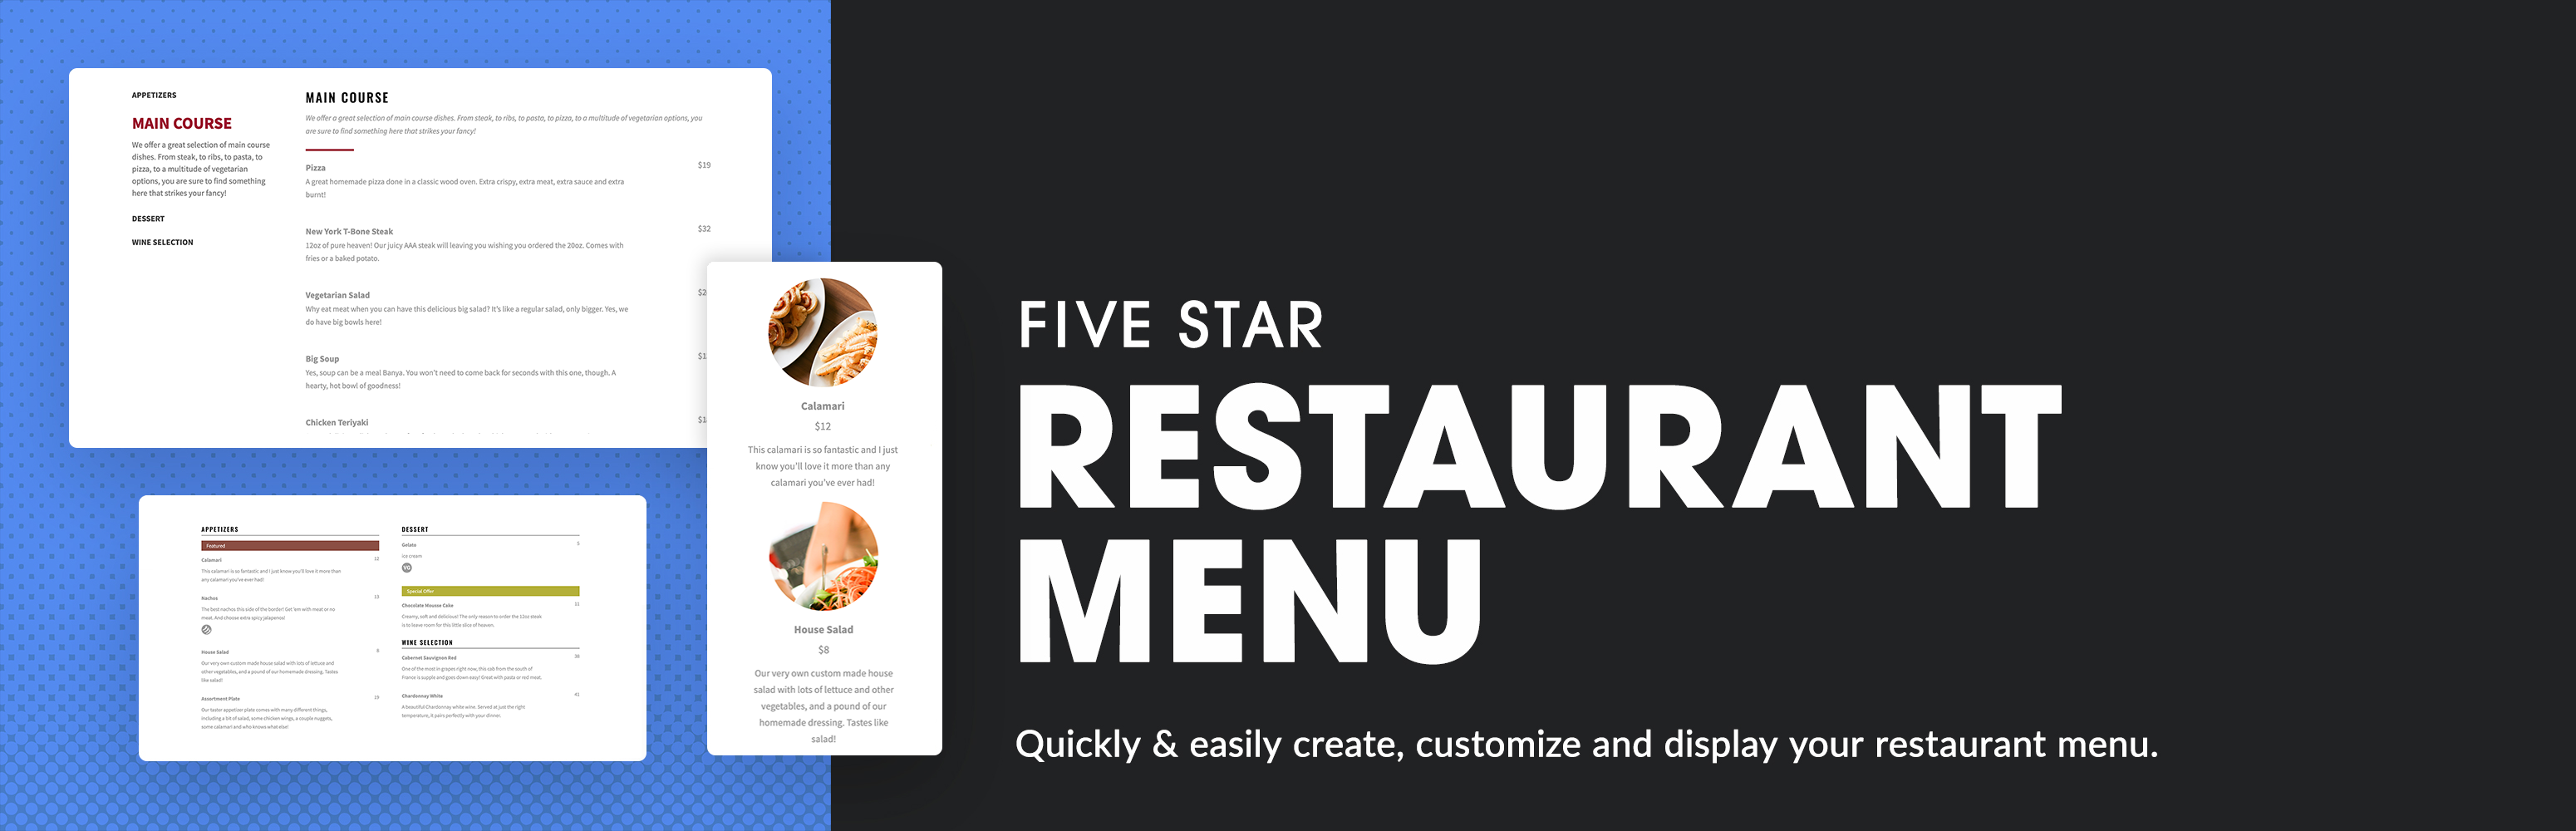 Five Star Restaurant Menu